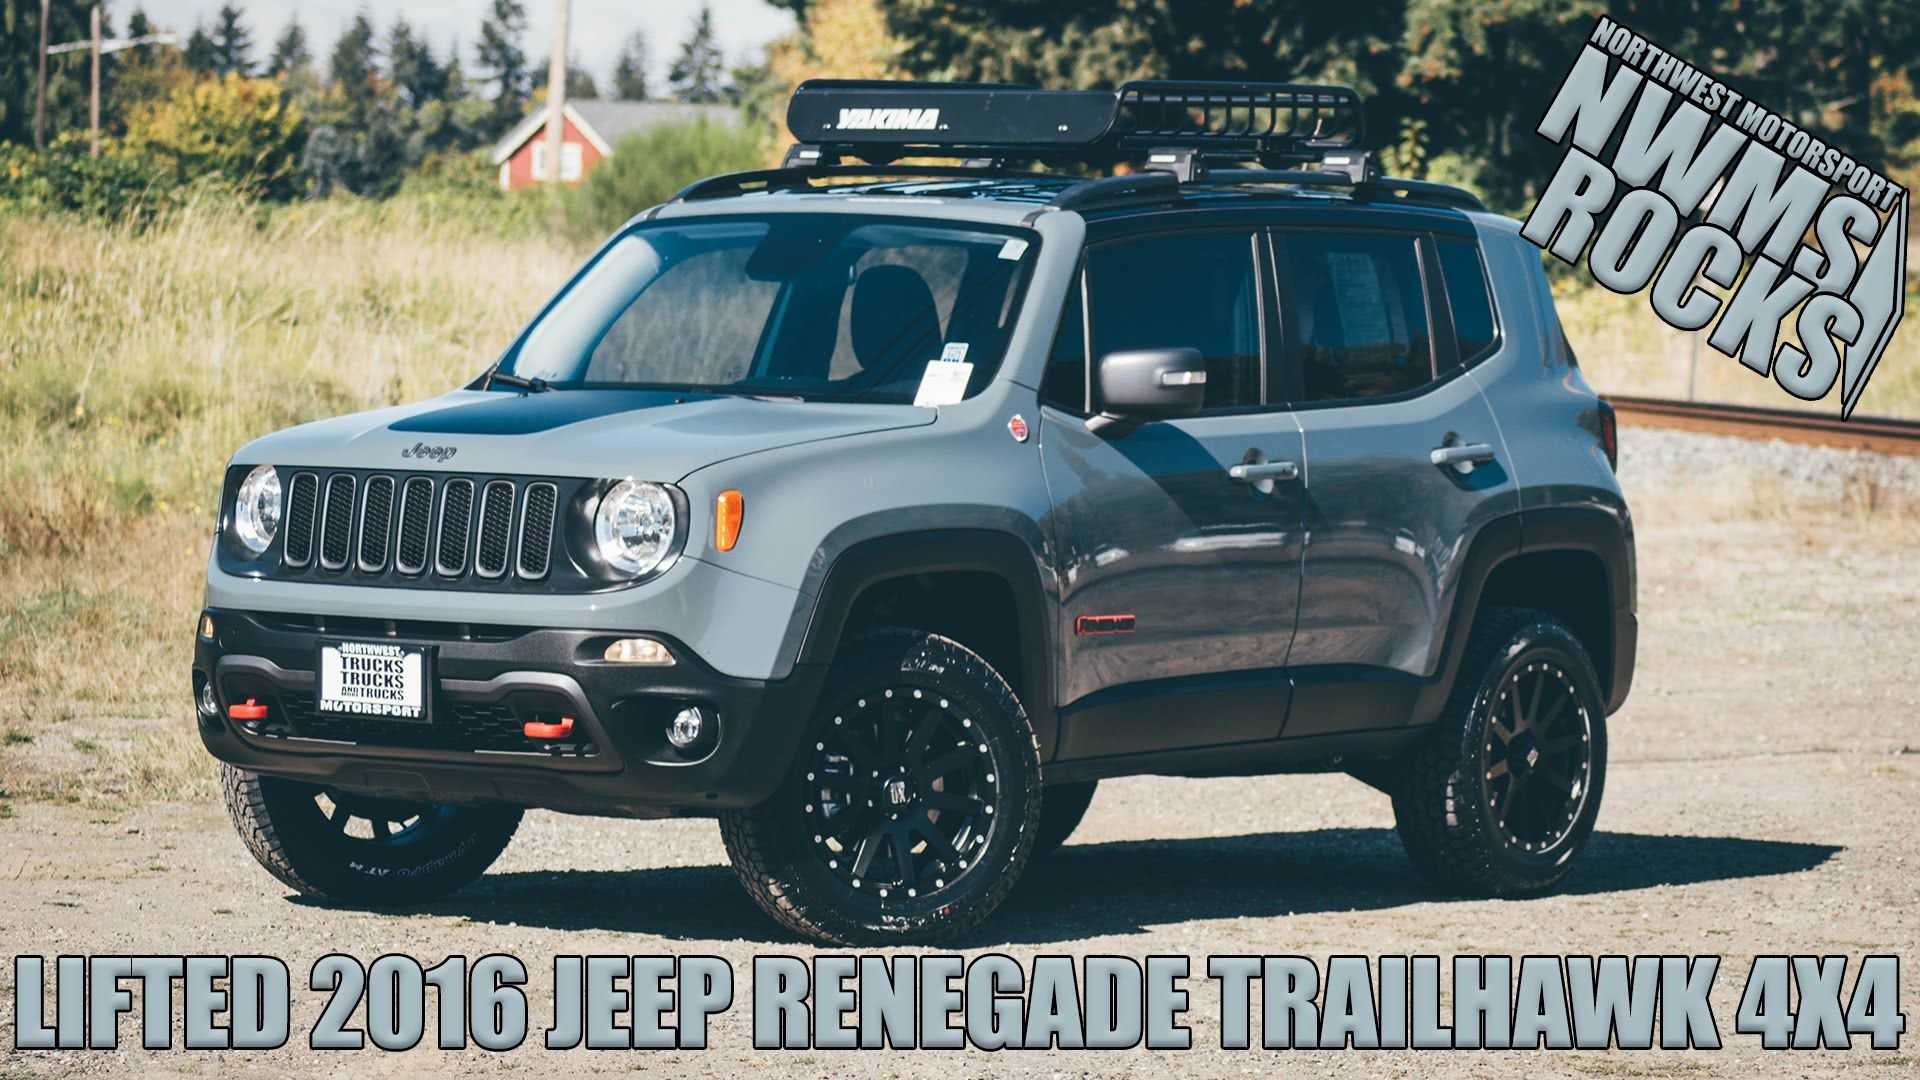 Awesome Jeep Renegade Trailhawk Lifted Jeep Renegade Trailhawk Custom Wheels Jeep Renegade